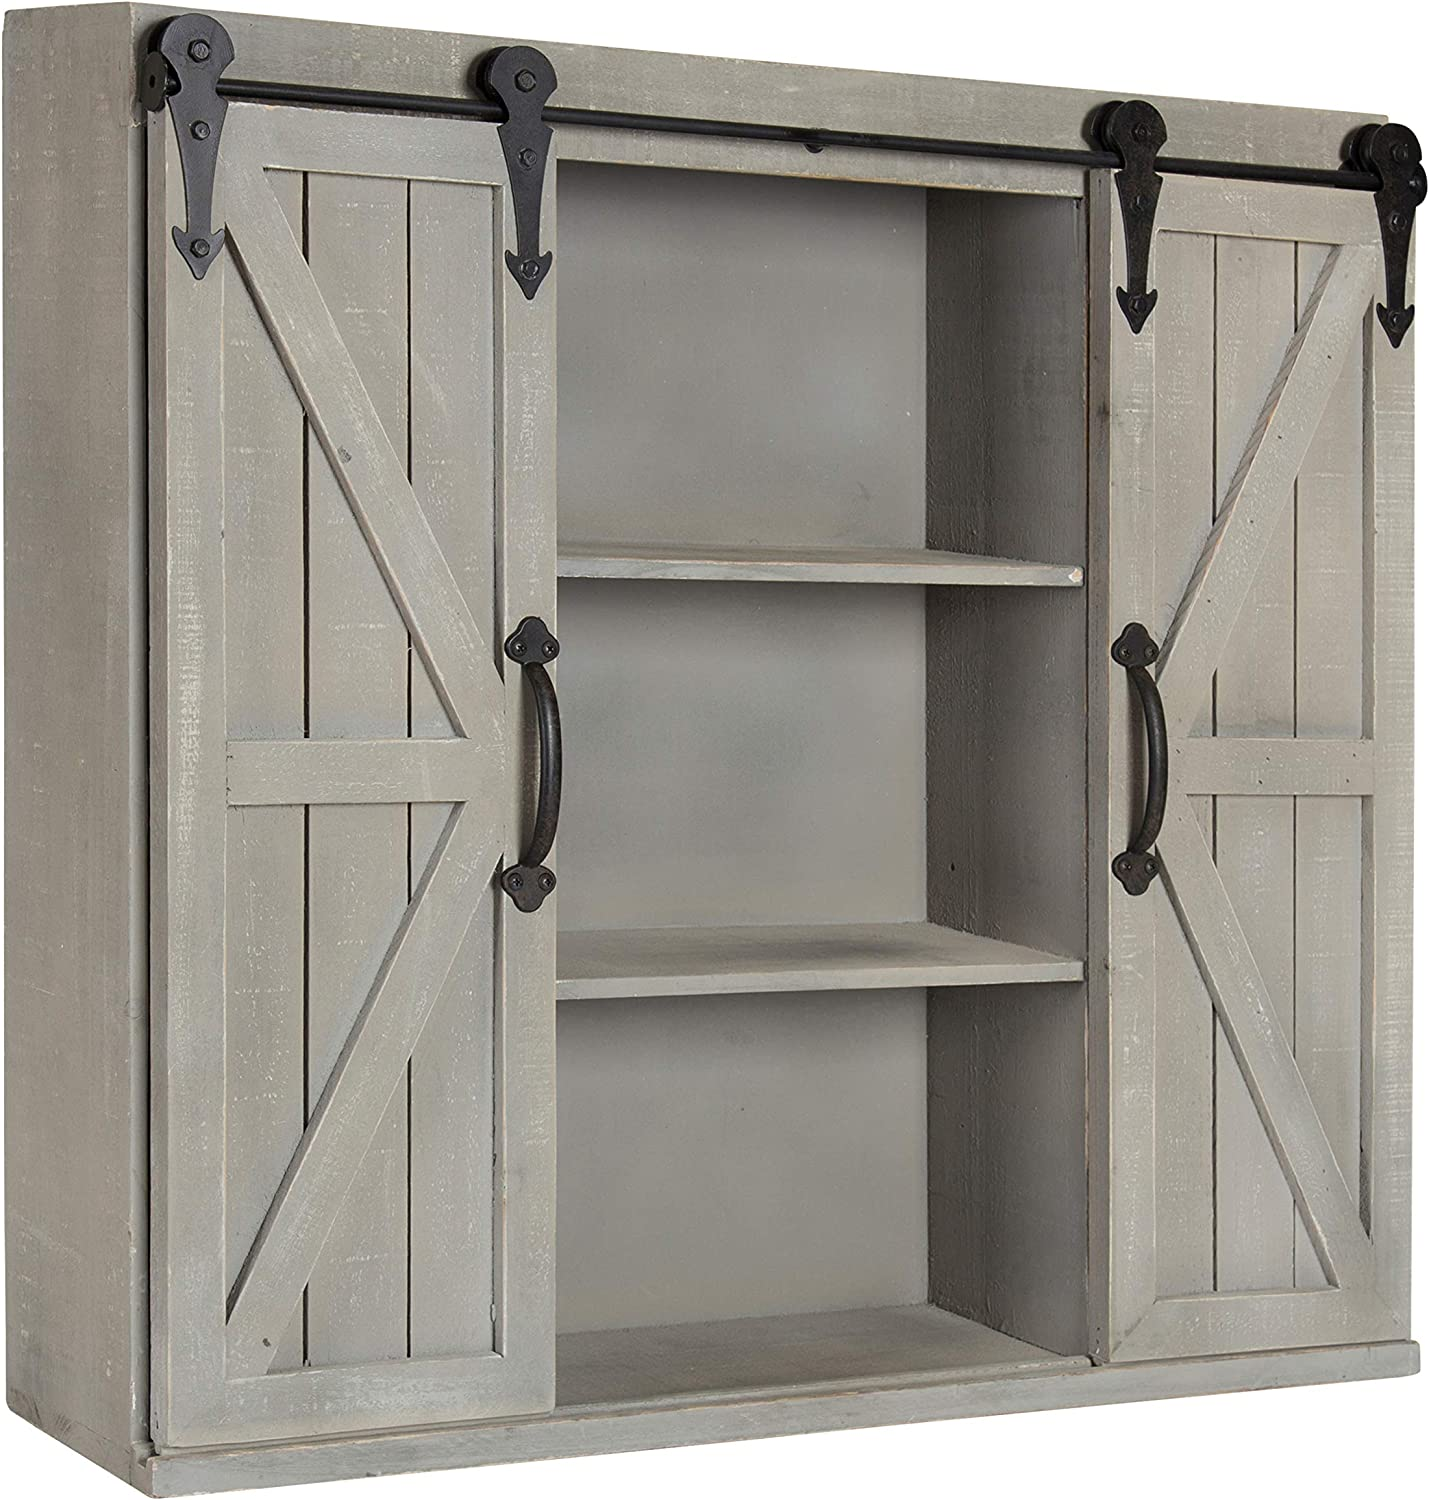 Vintage Industrial Style Wall Cabinet Storage Shelving Unit Small Wall Chest